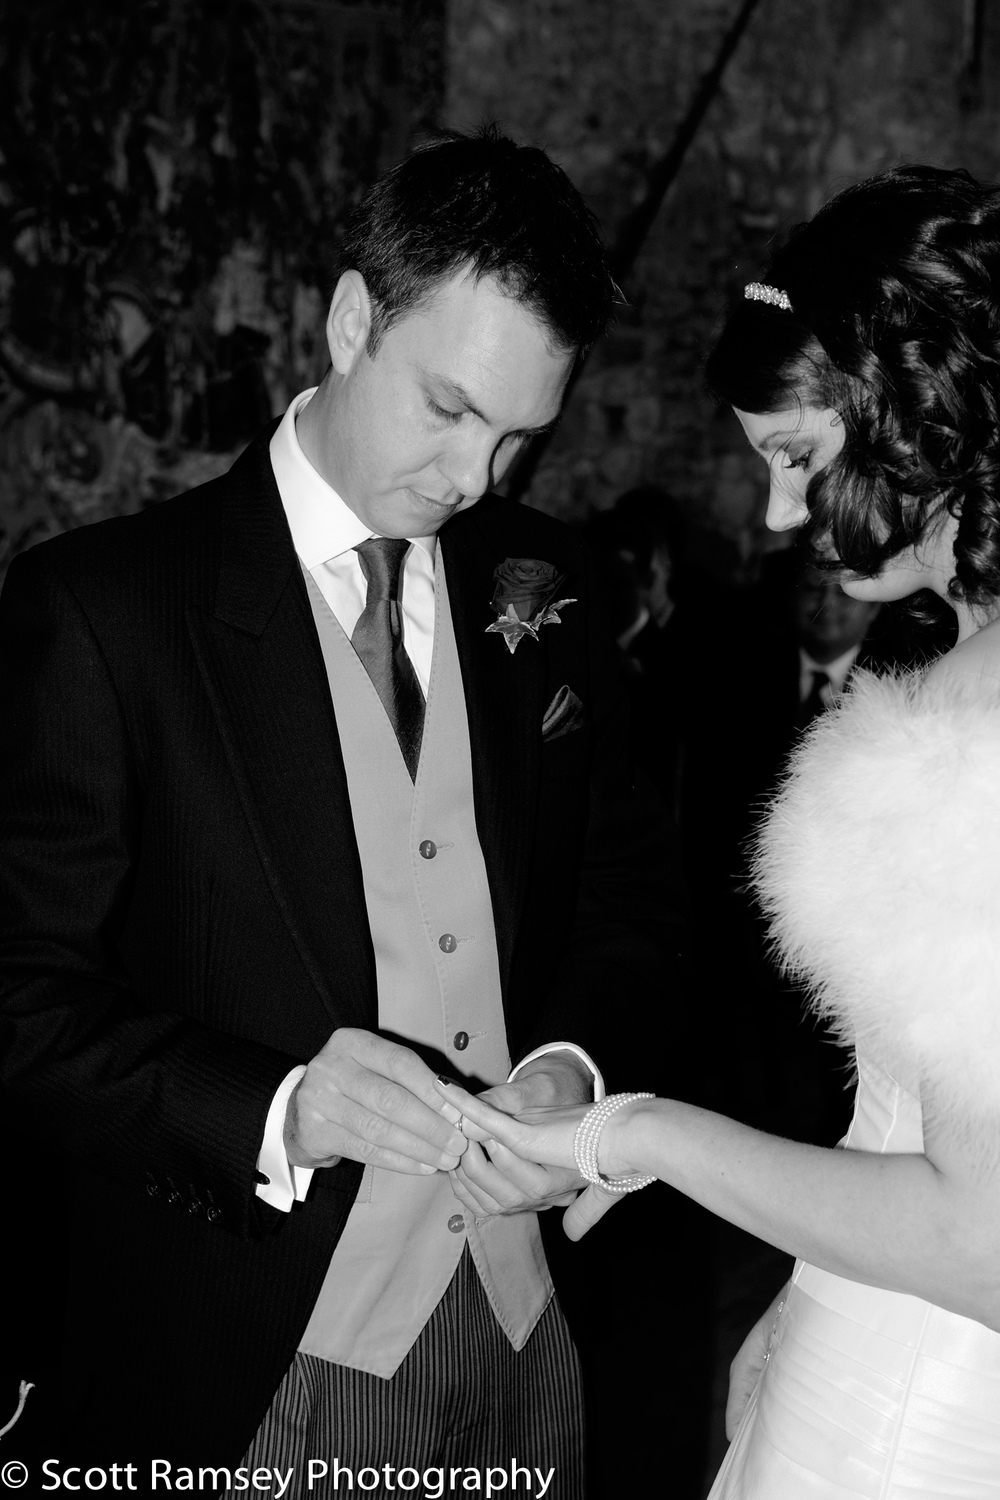 Winter-Wedding-Spread-Eagle-Hotel-Midhurst-Groom-Puts-Ring-On-Br